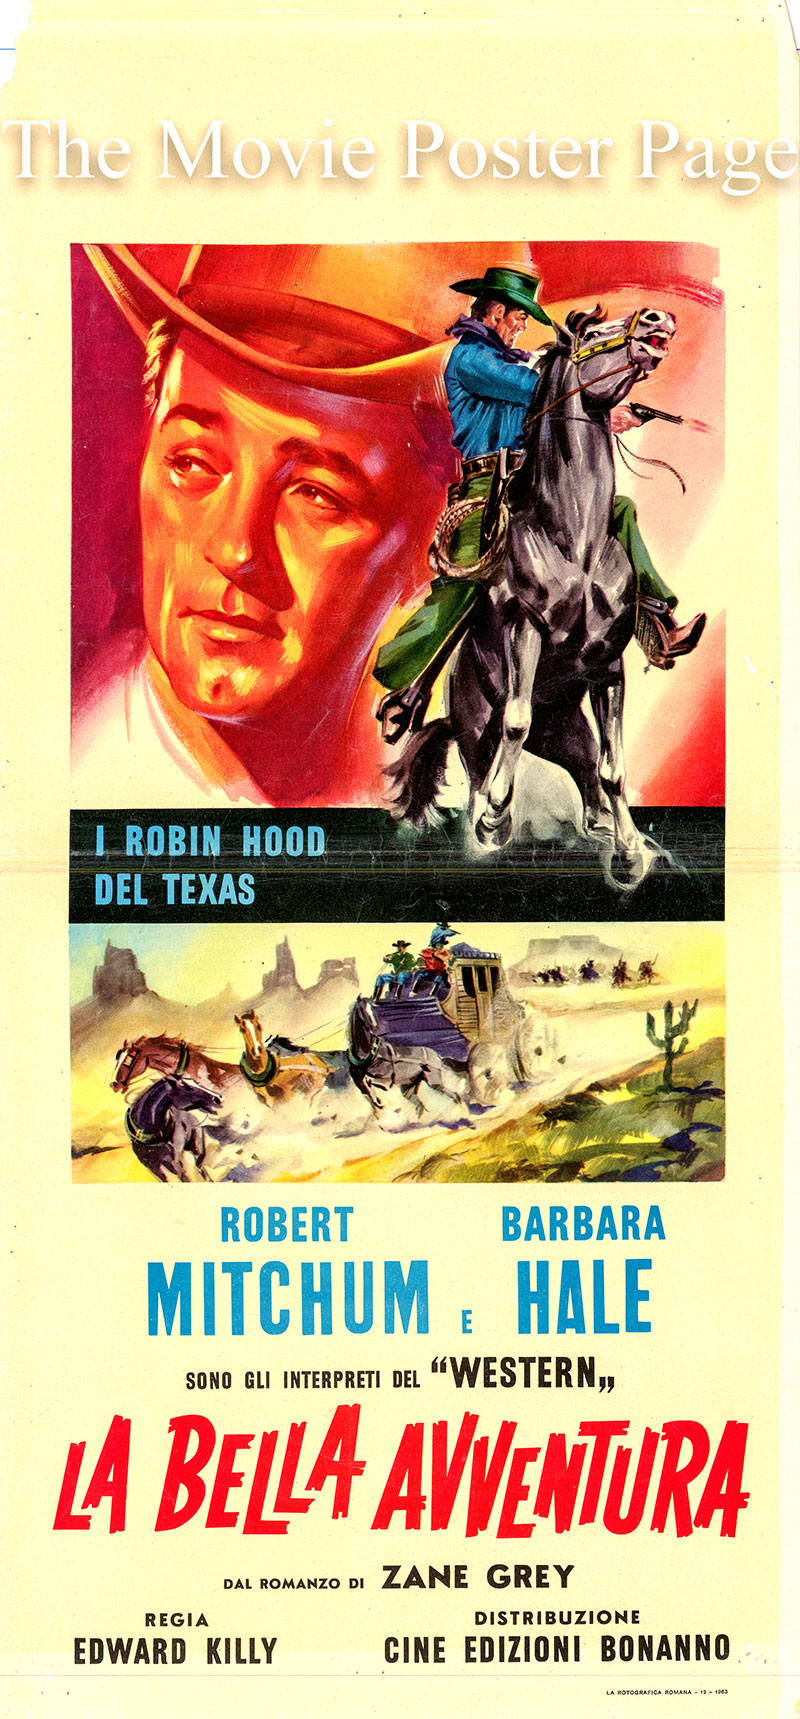 Pictured is an Italian locandina poster for a 1963 rerelease of the 1945 Edward Killy film West of the Pecos starring Robert Mitchum as Pecos Smith.